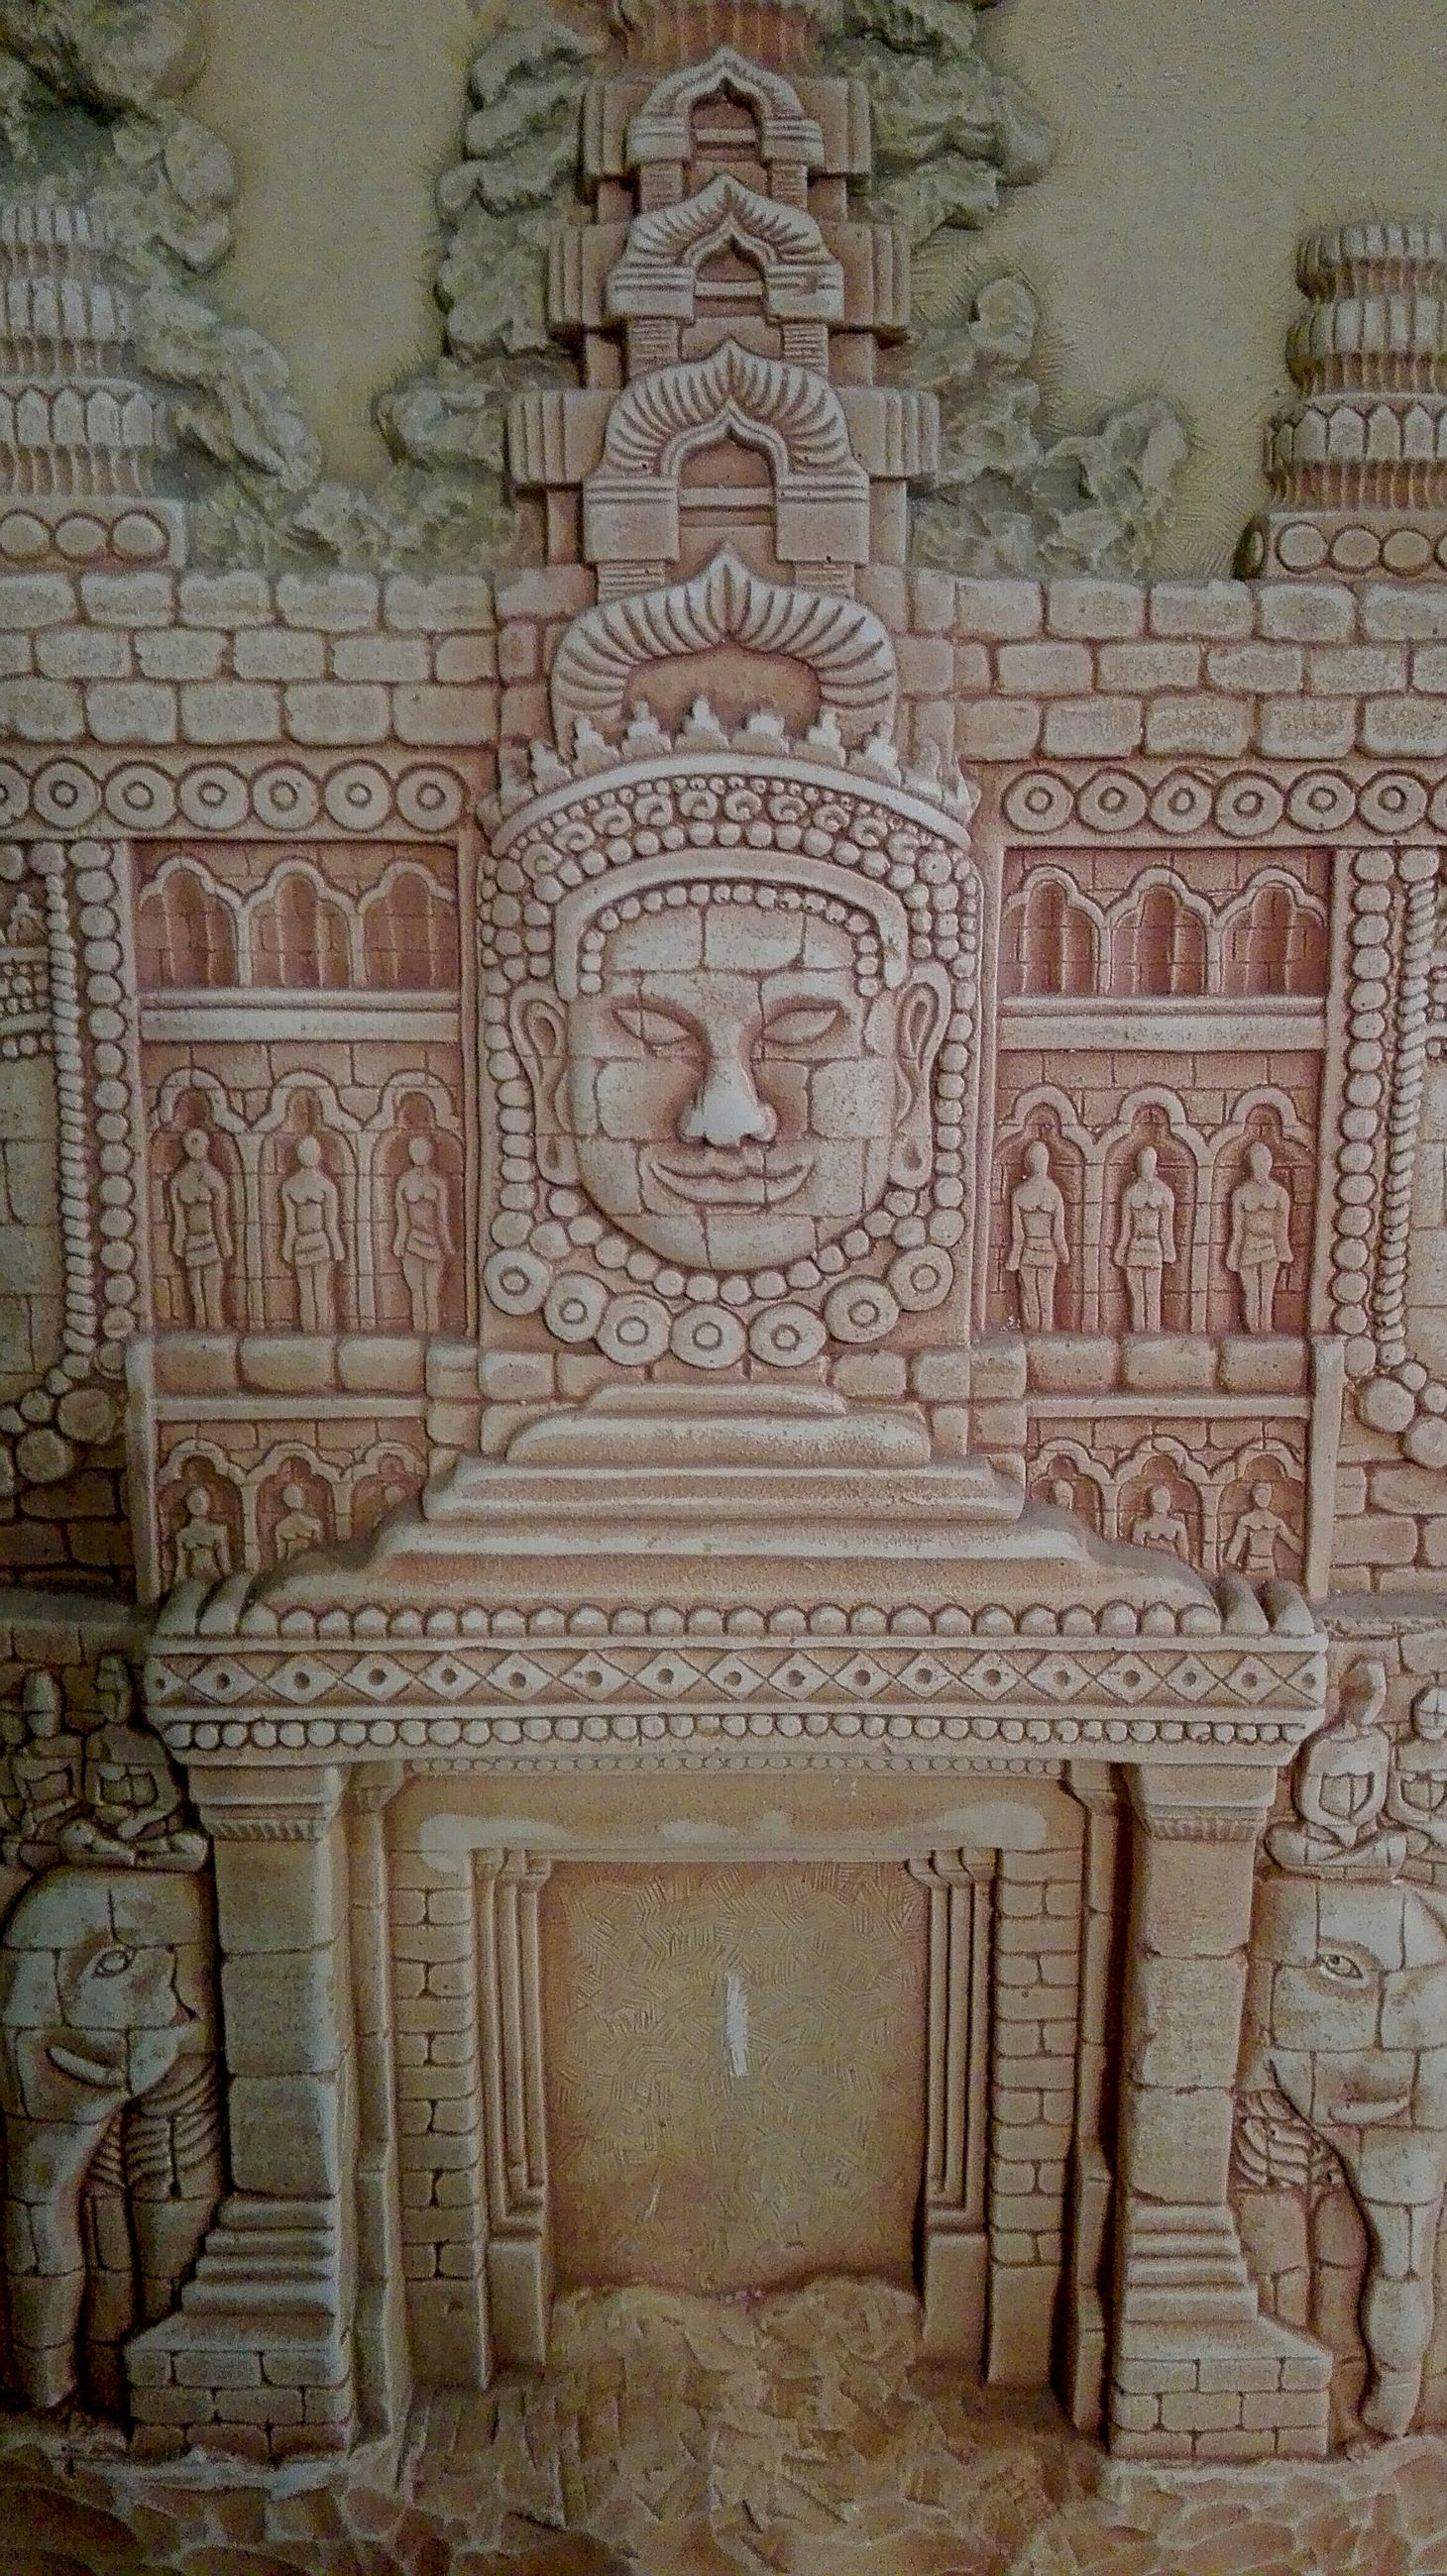 art and craft, art, architecture, creativity, built structure, indoors, ornate, history, ancient, carving, entrance, facade, arch, marble, day, architectural feature, stone, bas relief